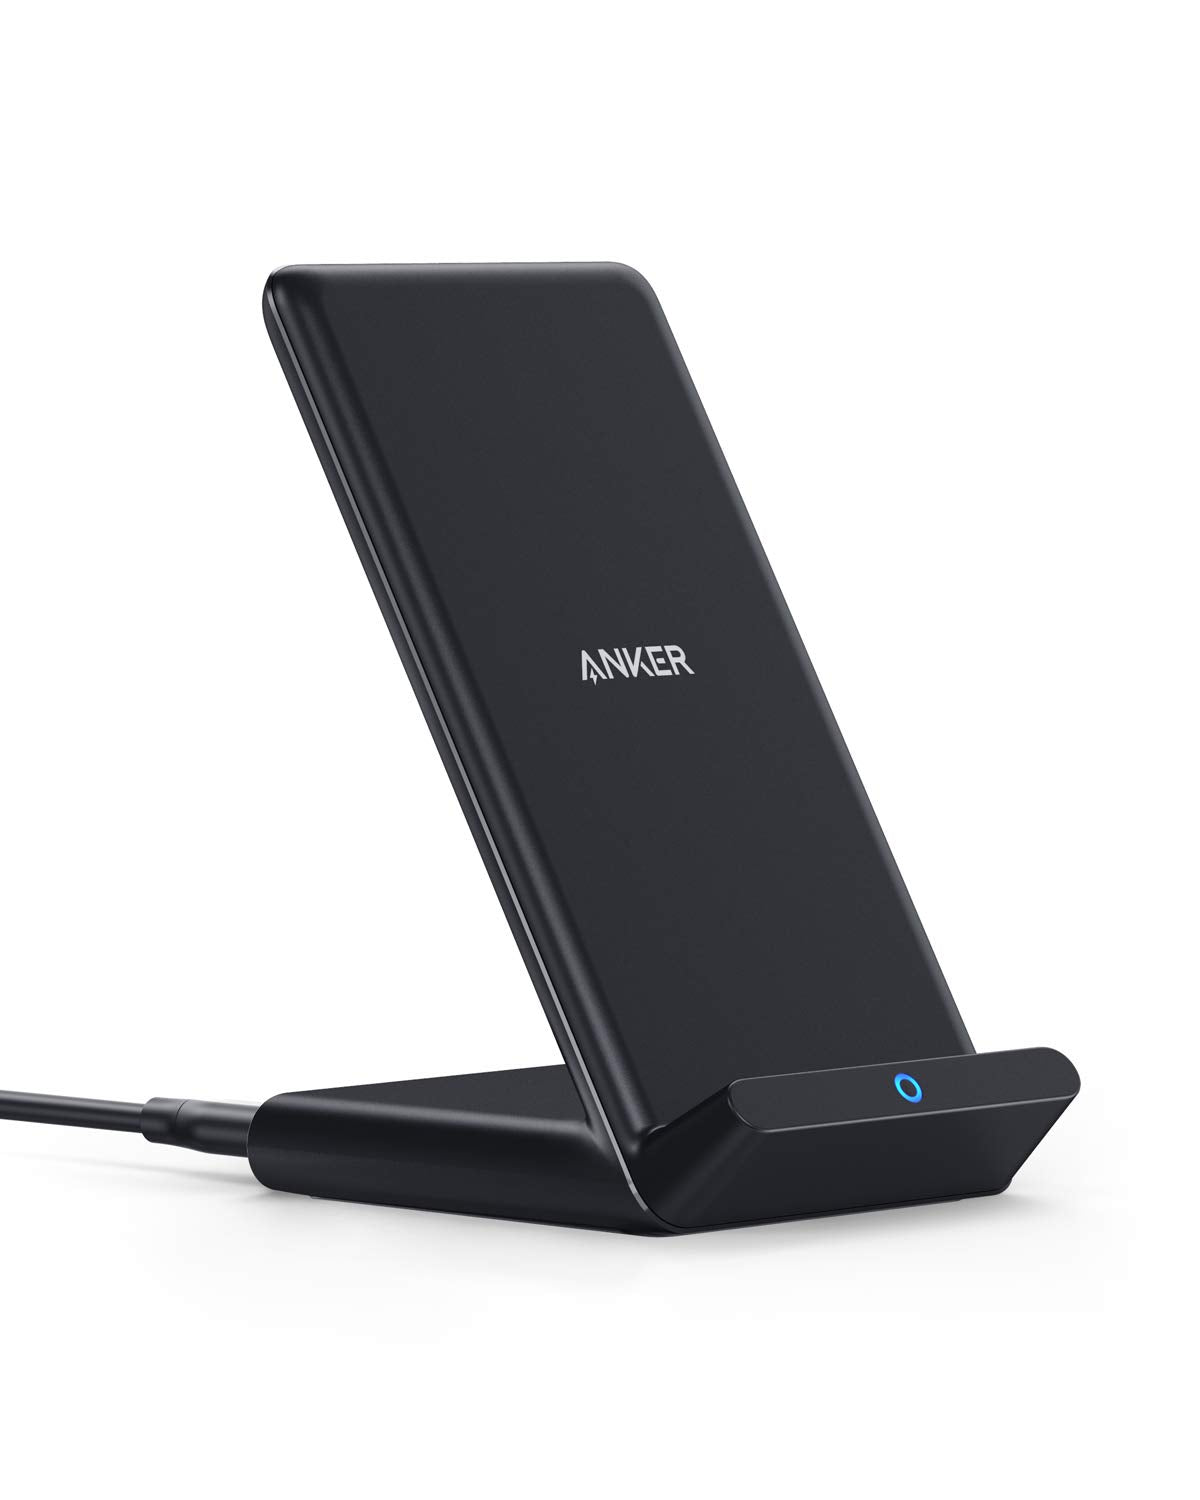 Anker Wireless Charger PowerWave Stand, Qi-Certified for iPhone 11, 11 Pro, 11 Pro Max, XR, Xs Max, XS, X, 8, 8 Plus, 10W Fast-Charging Galaxy S10 S9 S8, Note 10 Note 9 and More (No AC Adapter)